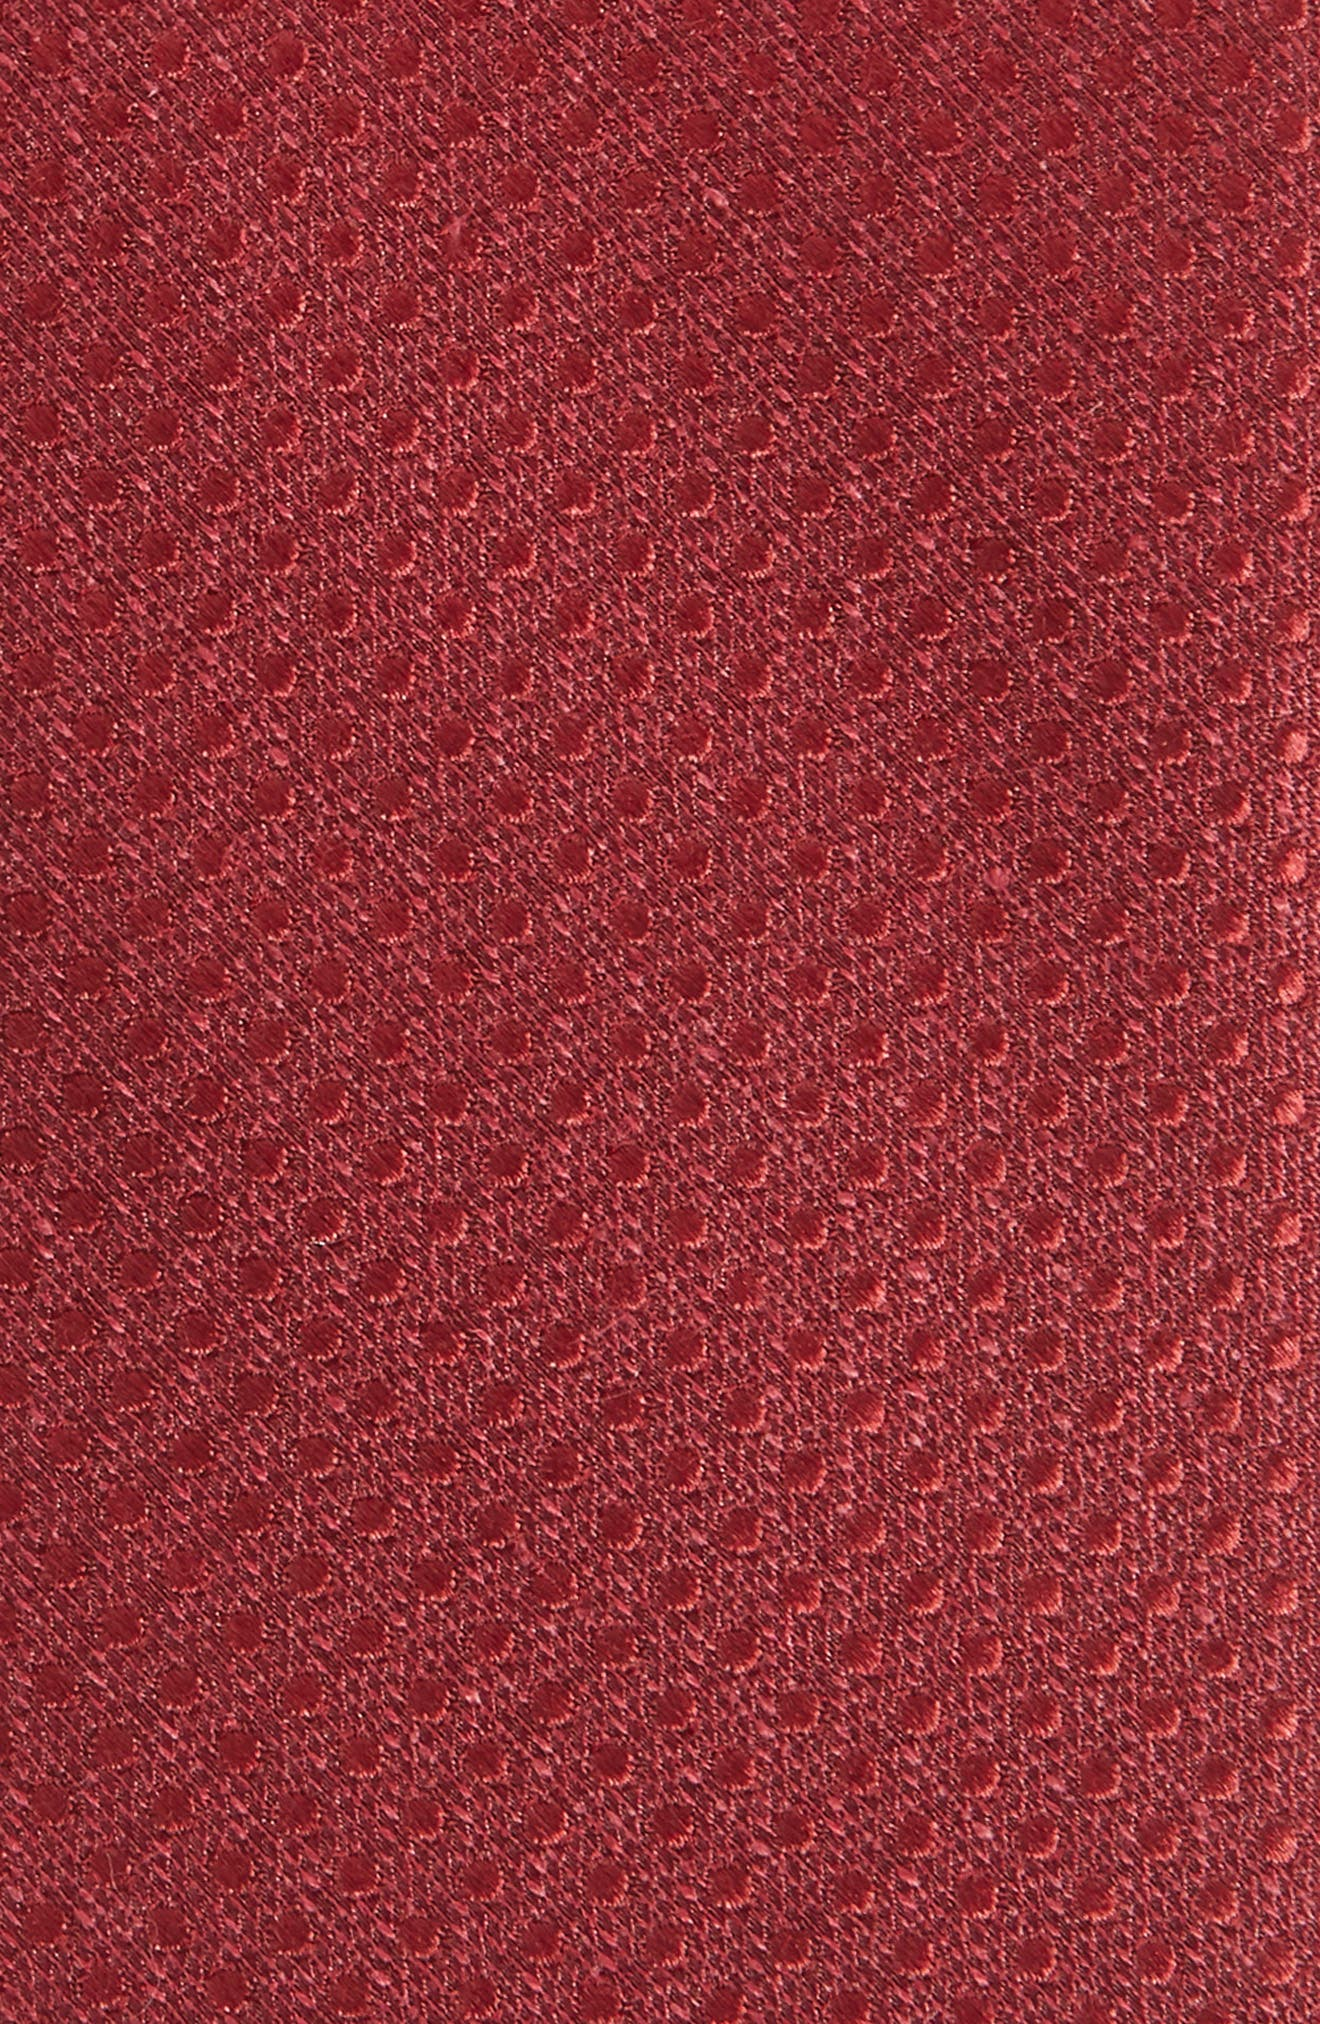 Spin Dot Silk & Cotton Tie,                             Alternate thumbnail 2, color,                             BURGUNDY